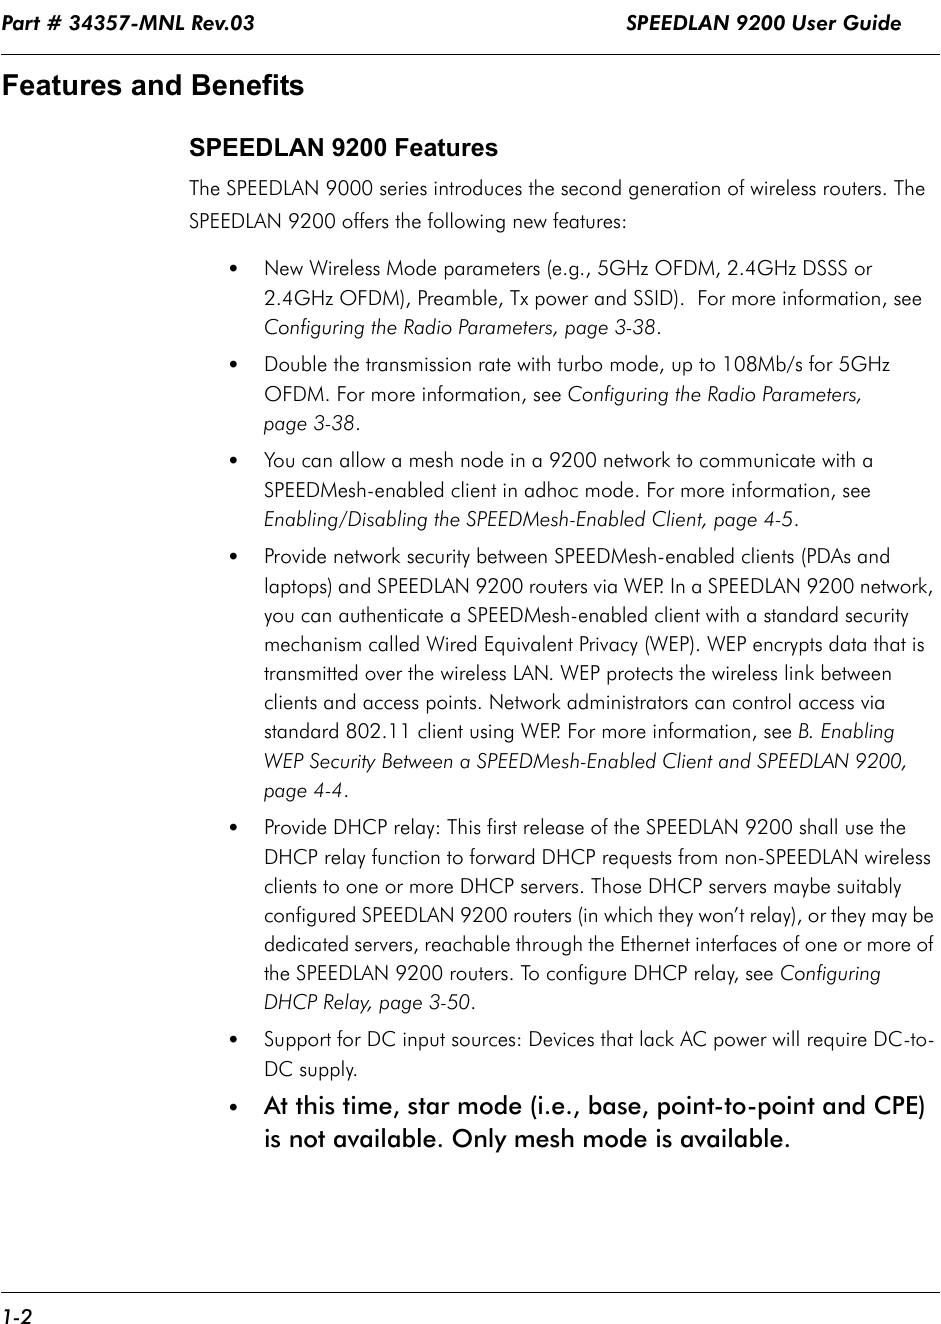 Part # 34357-MNL Rev.03                                                            SPEEDLAN 9200 User Guide 1-2Features and Benefits SPEEDLAN 9200 FeaturesThe SPEEDLAN 9000 series introduces the second generation of wireless routers. The SPEEDLAN 9200 offers the following new features:•New Wireless Mode parameters (e.g., 5GHz OFDM, 2.4GHz DSSS or 2.4GHz OFDM), Preamble, Tx power and SSID).  For more information, see Configuring the Radio Parameters, page 3-38.•Double the transmission rate with turbo mode, up to 108Mb/s for 5GHz OFDM. For more information, see Configuring the Radio Parameters, page 3-38.•You can allow a mesh node in a 9200 network to communicate with a SPEEDMesh-enabled client in adhoc mode. For more information, see Enabling/Disabling the SPEEDMesh-Enabled Client, page 4-5.•Provide network security between SPEEDMesh-enabled clients (PDAs and laptops) and SPEEDLAN 9200 routers via WEP. In a SPEEDLAN 9200 network, you can authenticate a SPEEDMesh-enabled client with a standard security mechanism called Wired Equivalent Privacy (WEP). WEP encrypts data that is transmitted over the wireless LAN. WEP protects the wireless link between clients and access points. Network administrators can control access via standard 802.11 client using WEP. For more information, see B. Enabling WEP Security Between a SPEEDMesh-Enabled Client and SPEEDLAN 9200, page 4-4.•Provide DHCP relay: This first release of the SPEEDLAN 9200 shall use the DHCP relay function to forward DHCP requests from non-SPEEDLAN wireless clients to one or more DHCP servers. Those DHCP servers maybe suitably configured SPEEDLAN 9200 routers (in which they won't relay), or they may be dedicated servers, reachable through the Ethernet interfaces of one or more of the SPEEDLAN 9200 routers. To configure DHCP relay, see Configuring DHCP Relay, page 3-50.•Support for DC input sources: Devices that lack AC power will require DC-to-DC supply. •At this time, star mode (i.e., base, point-to-point and CPE) 